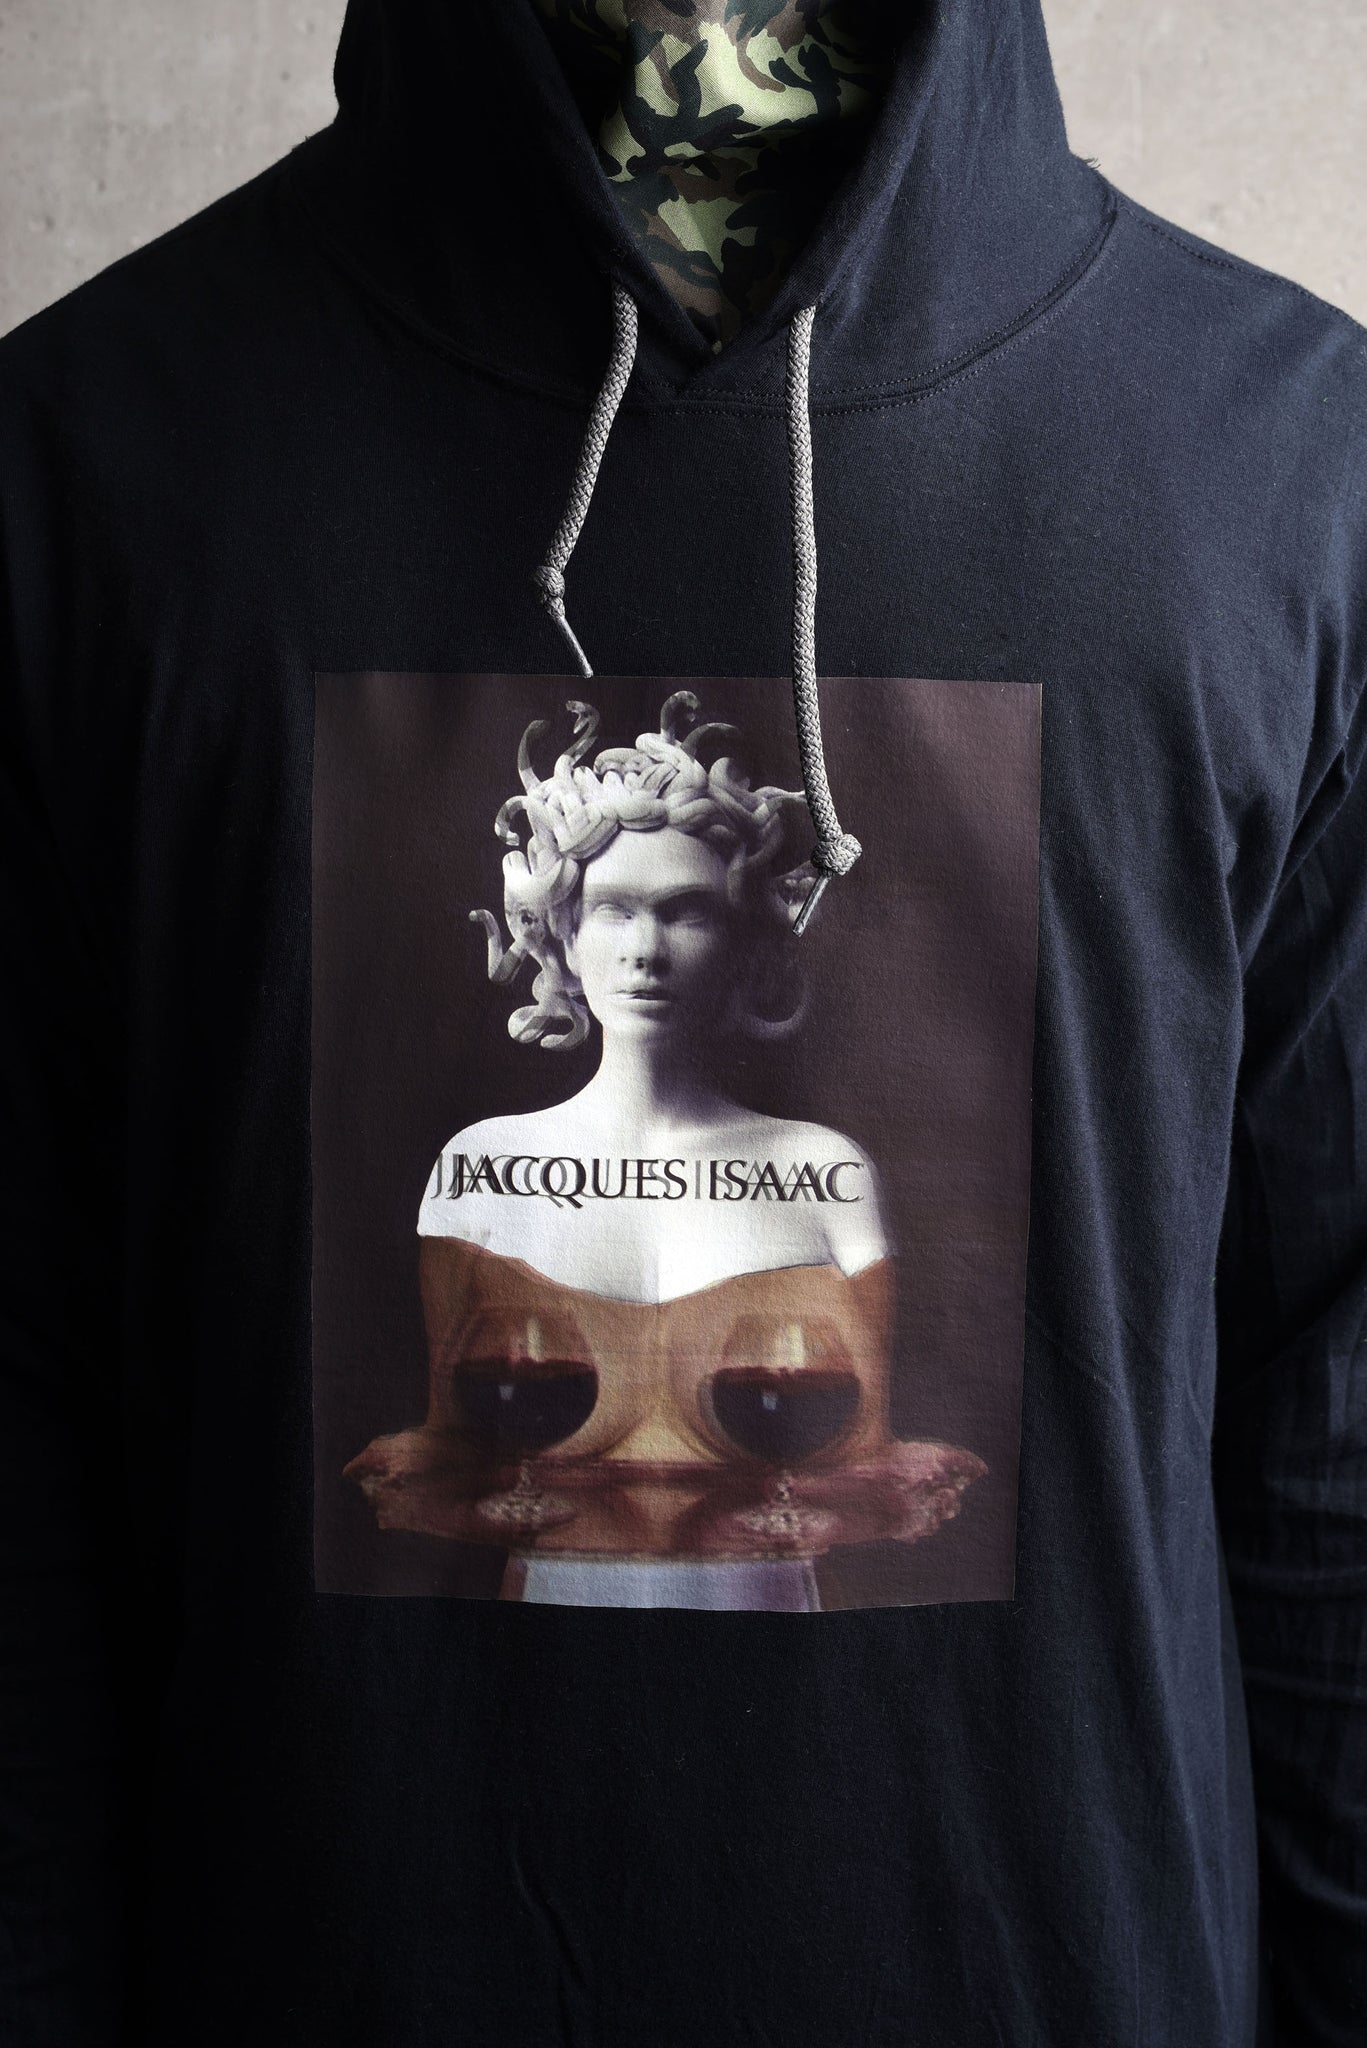 Jacques Isaac 'Blurred Vision' Hoodie